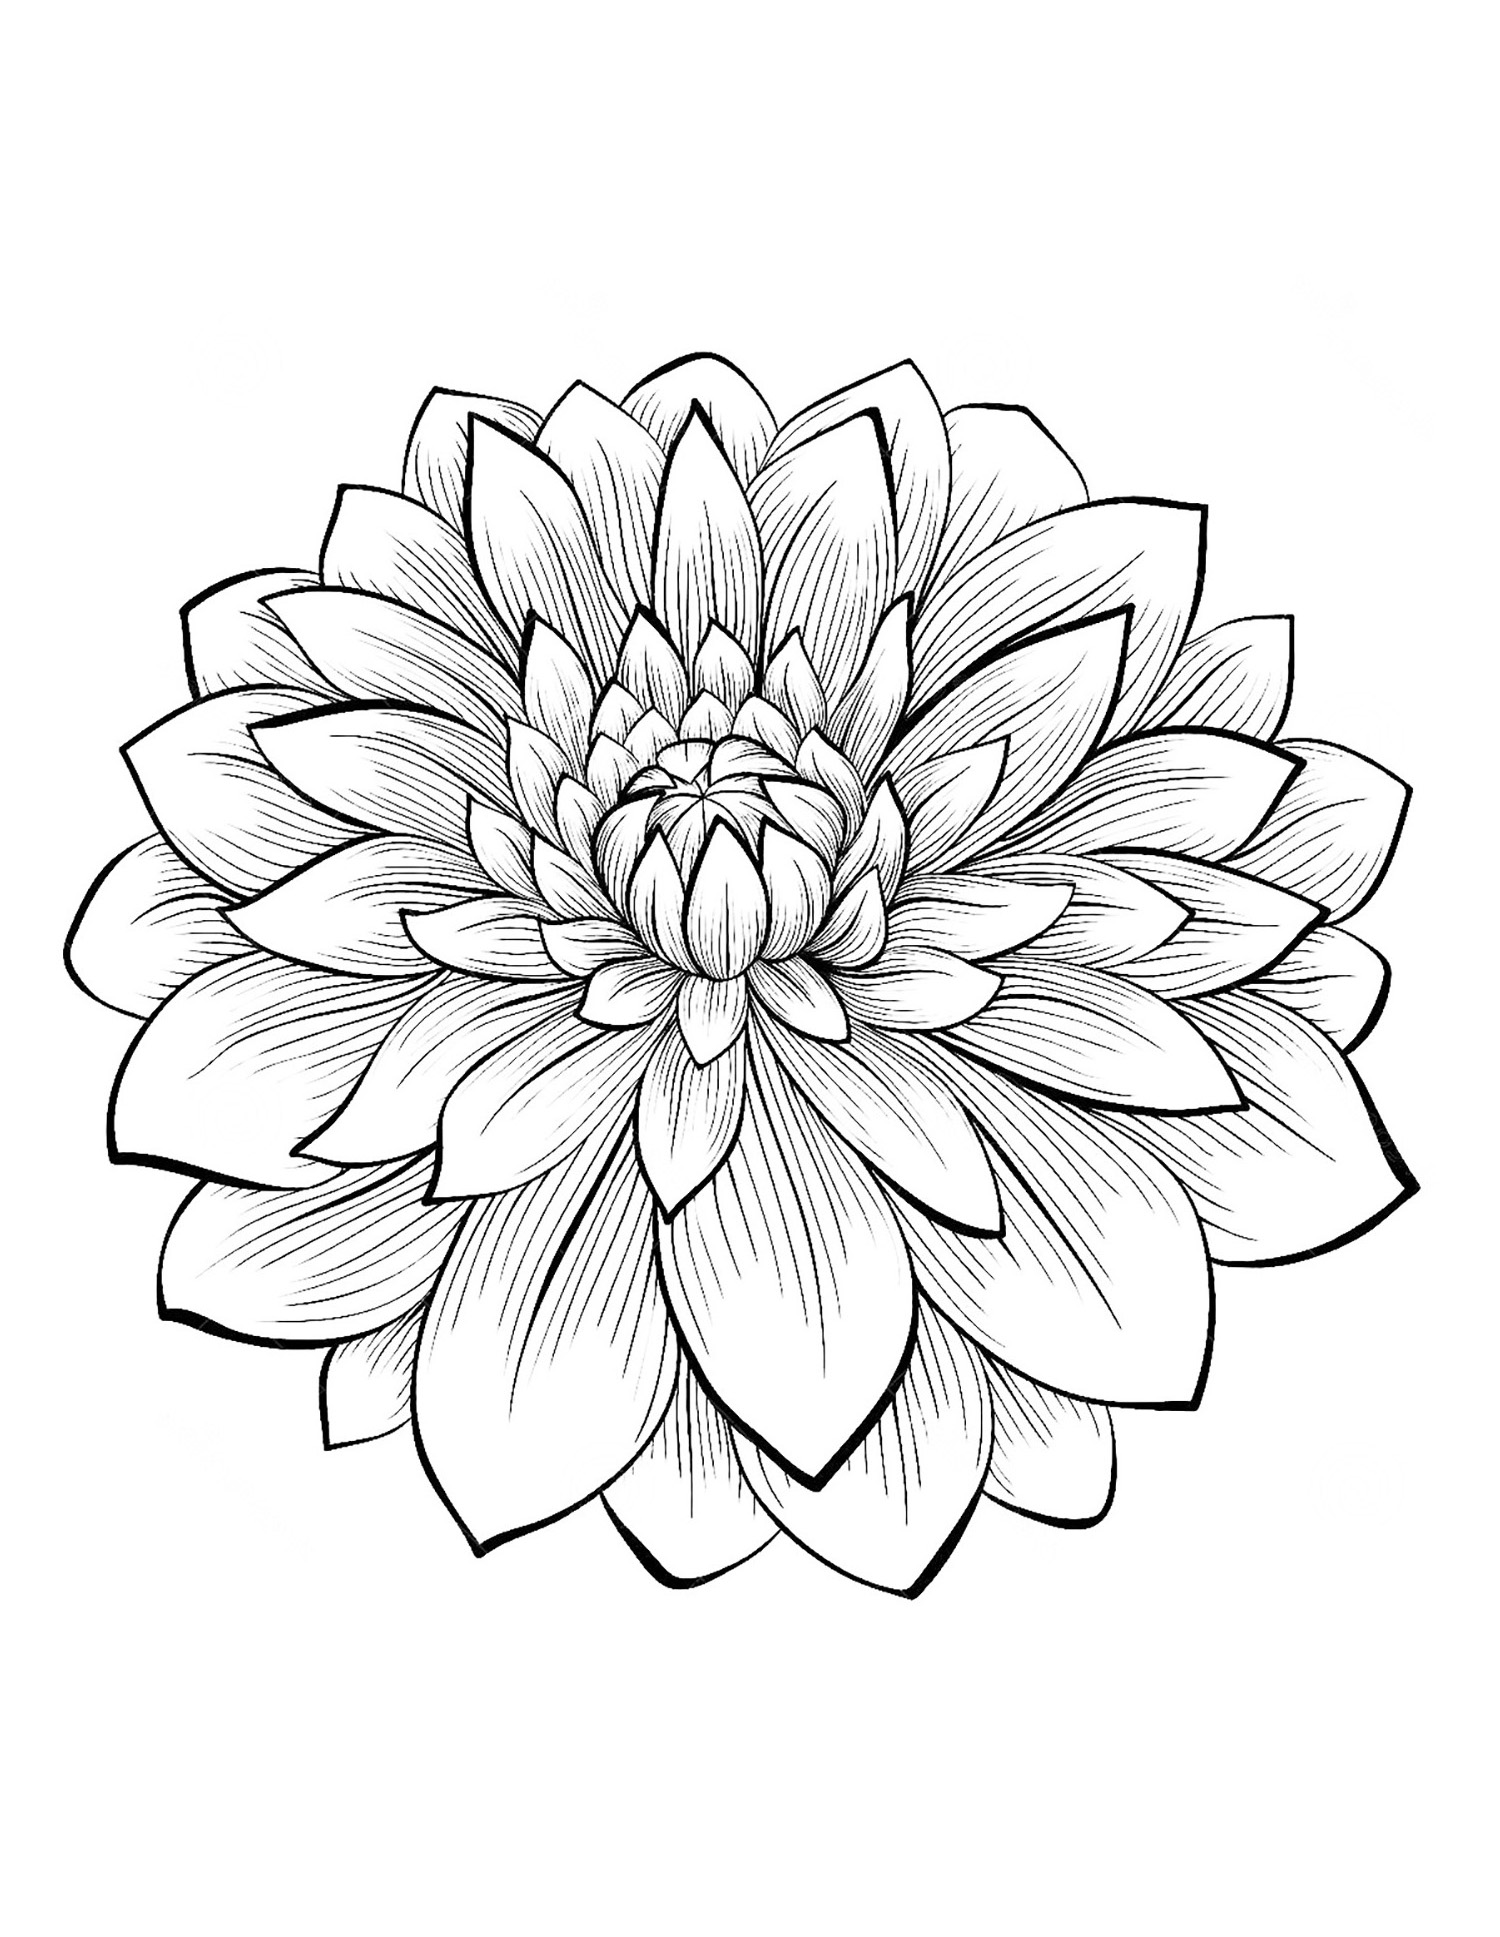 Dahlia : color one of the most beautiful flowers